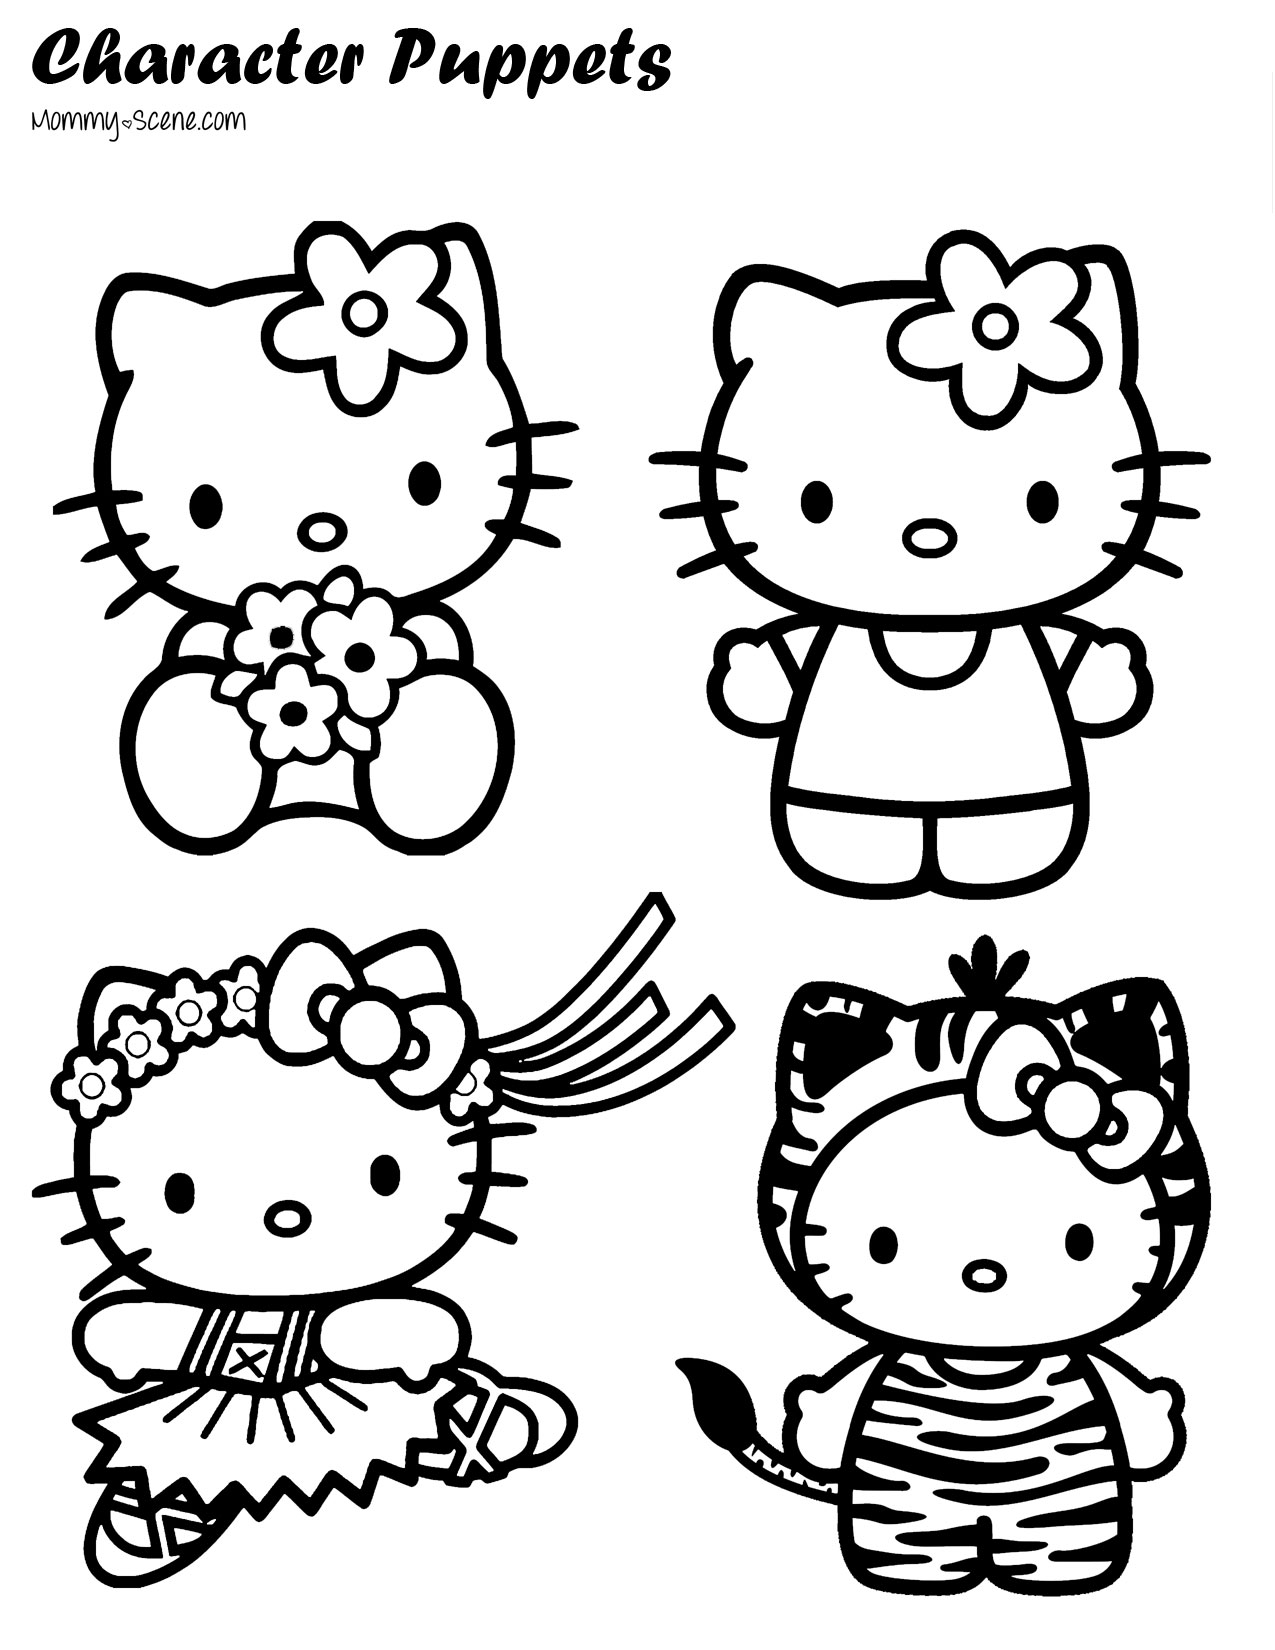 1275x1650 Paper Character Puppets Puppet, Hello Kitty And Kitty